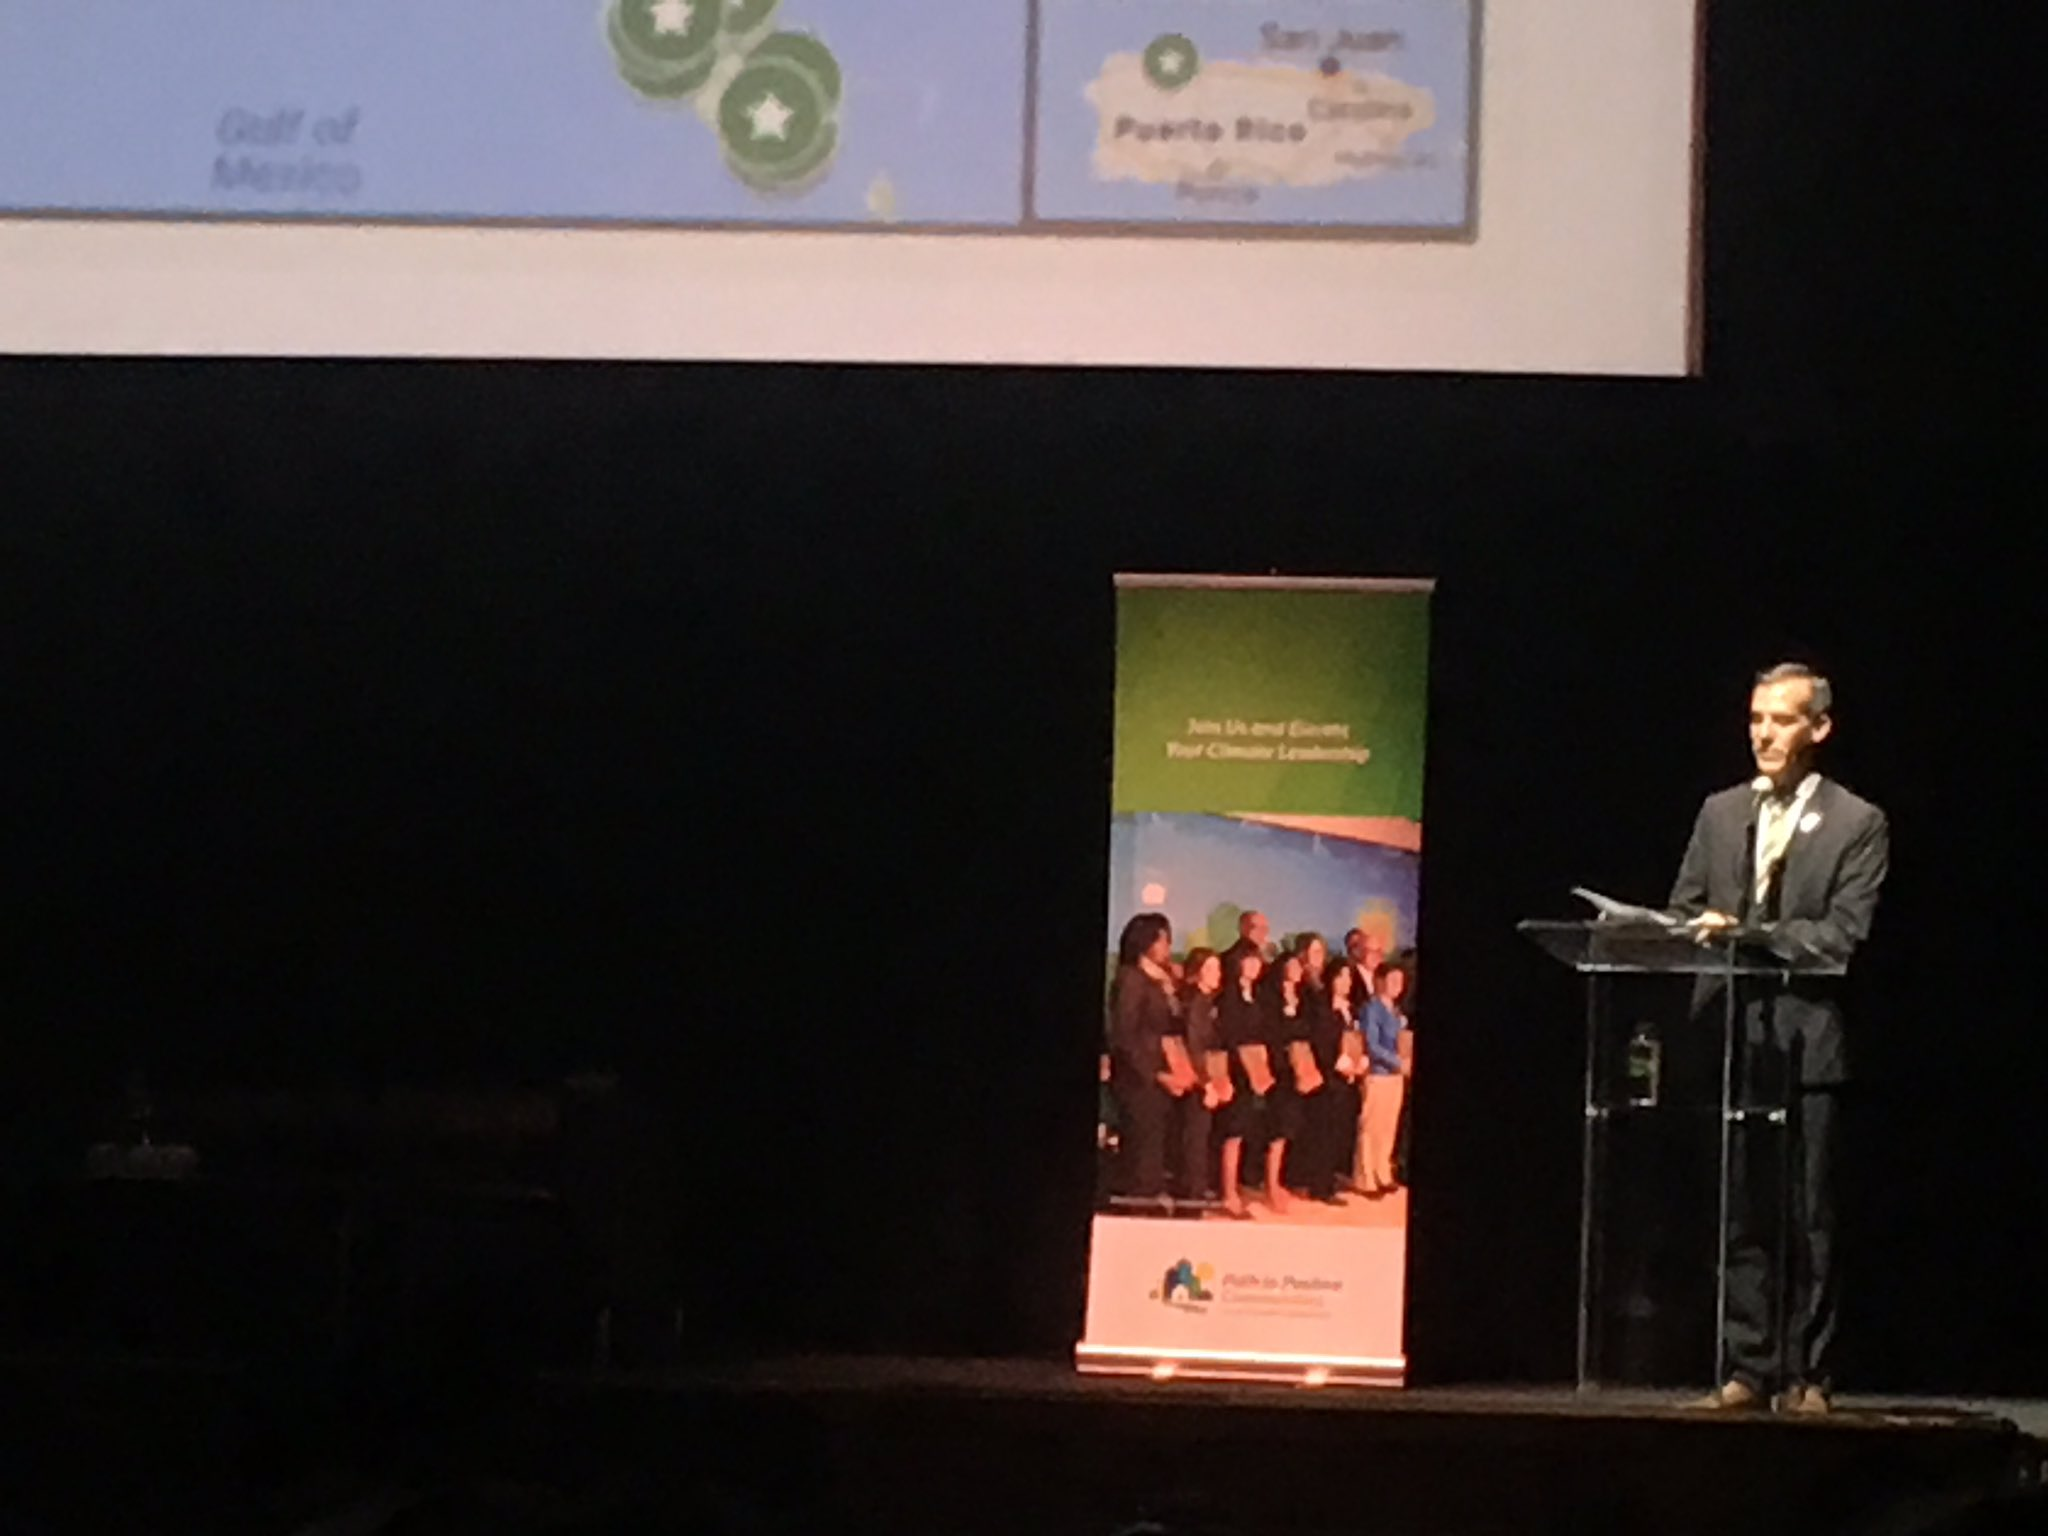 Props & support for @ericgarcetti & his climate action 2 get LA 2 100% renewables by 2035 & all EV Metro bus fleet by 2030!#CLIMATEDAYLA https://t.co/zb2eFFyL8J